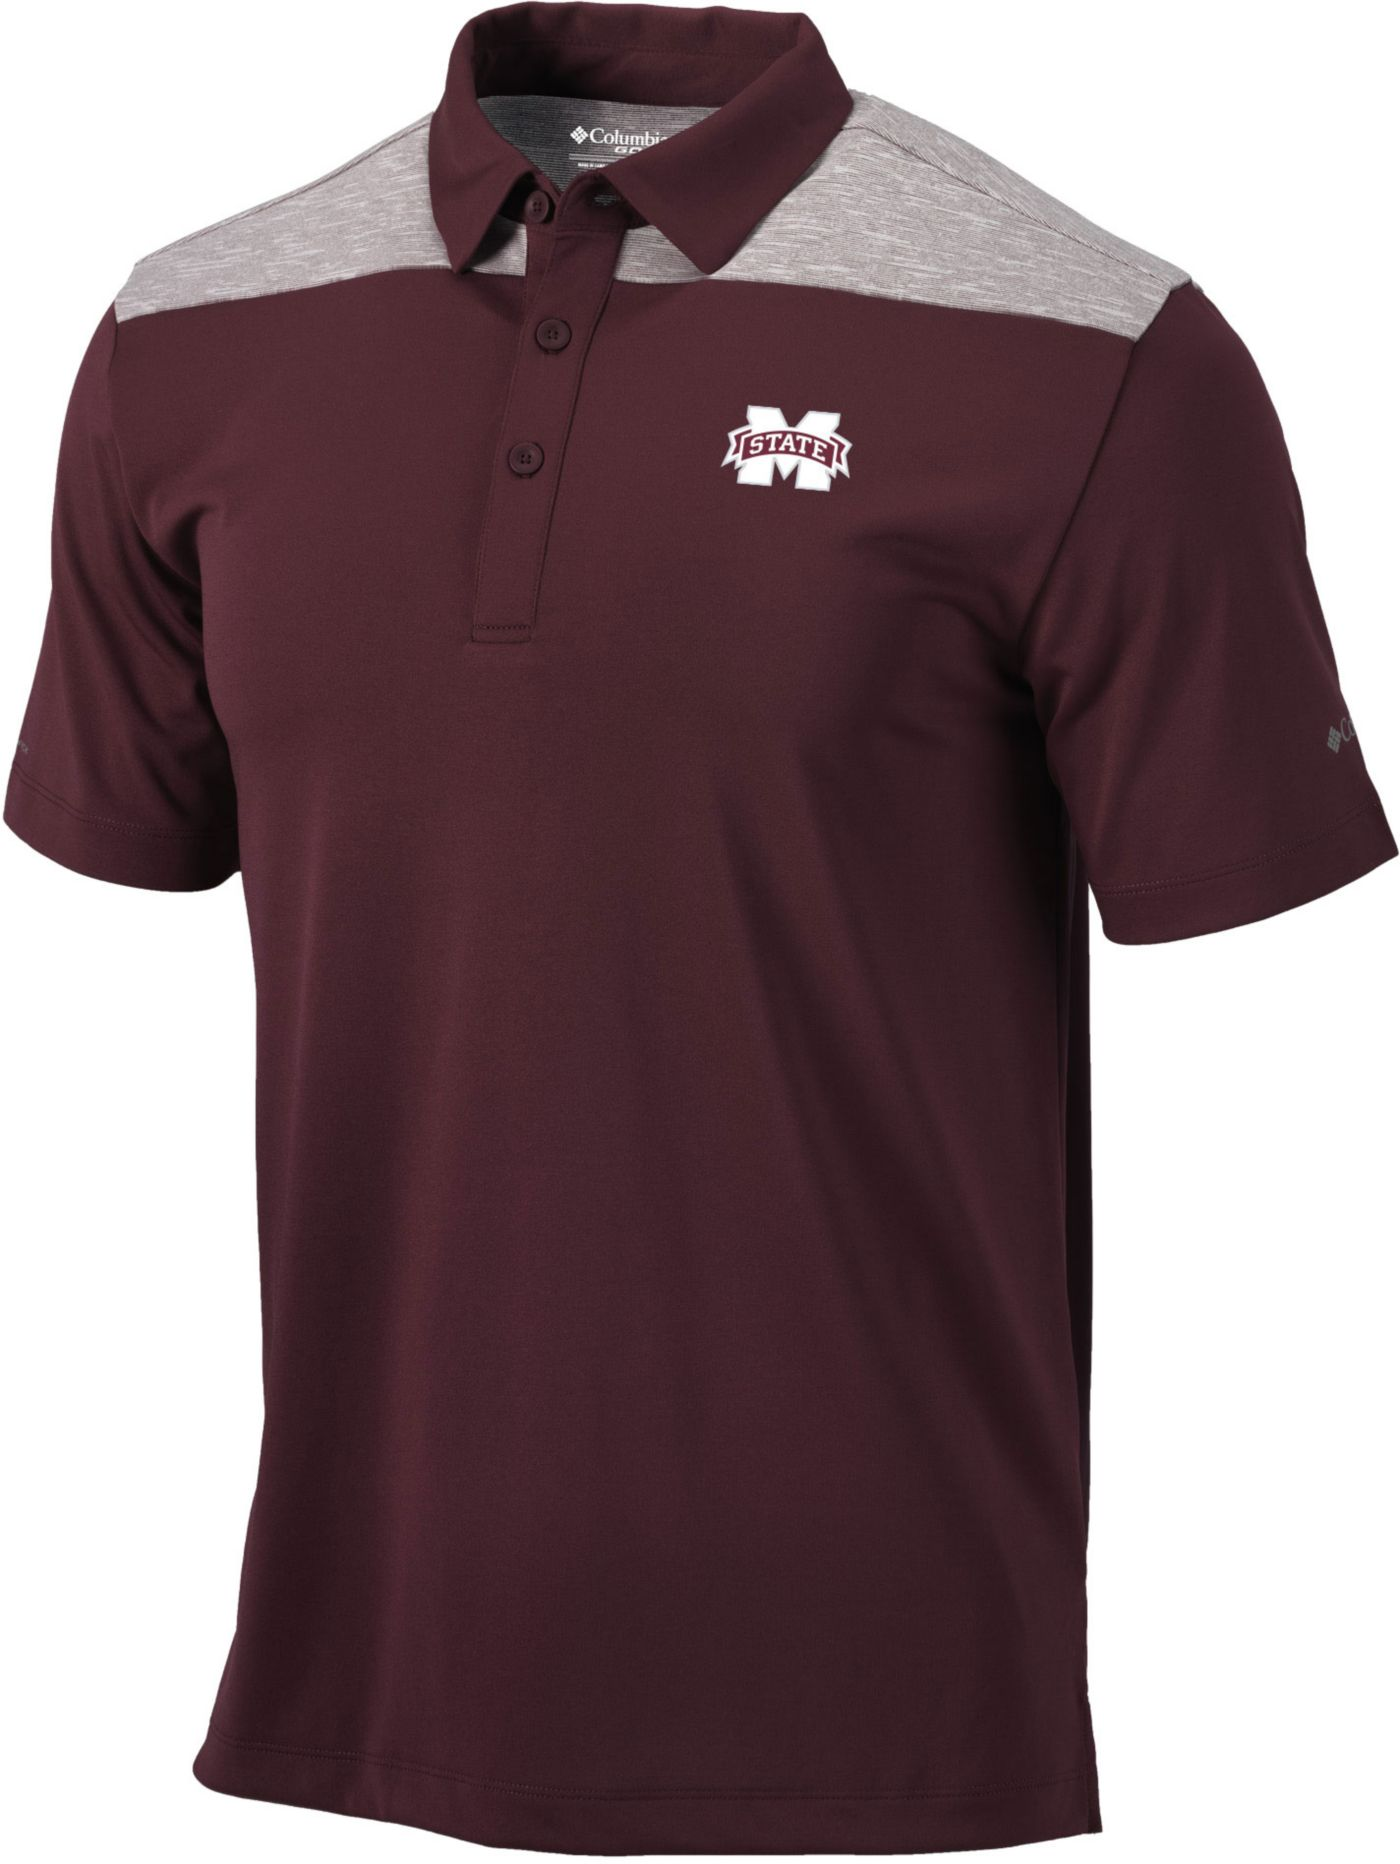 Columbia Men's Mississippi State Bulldogs Maroon Utility Performance Polo